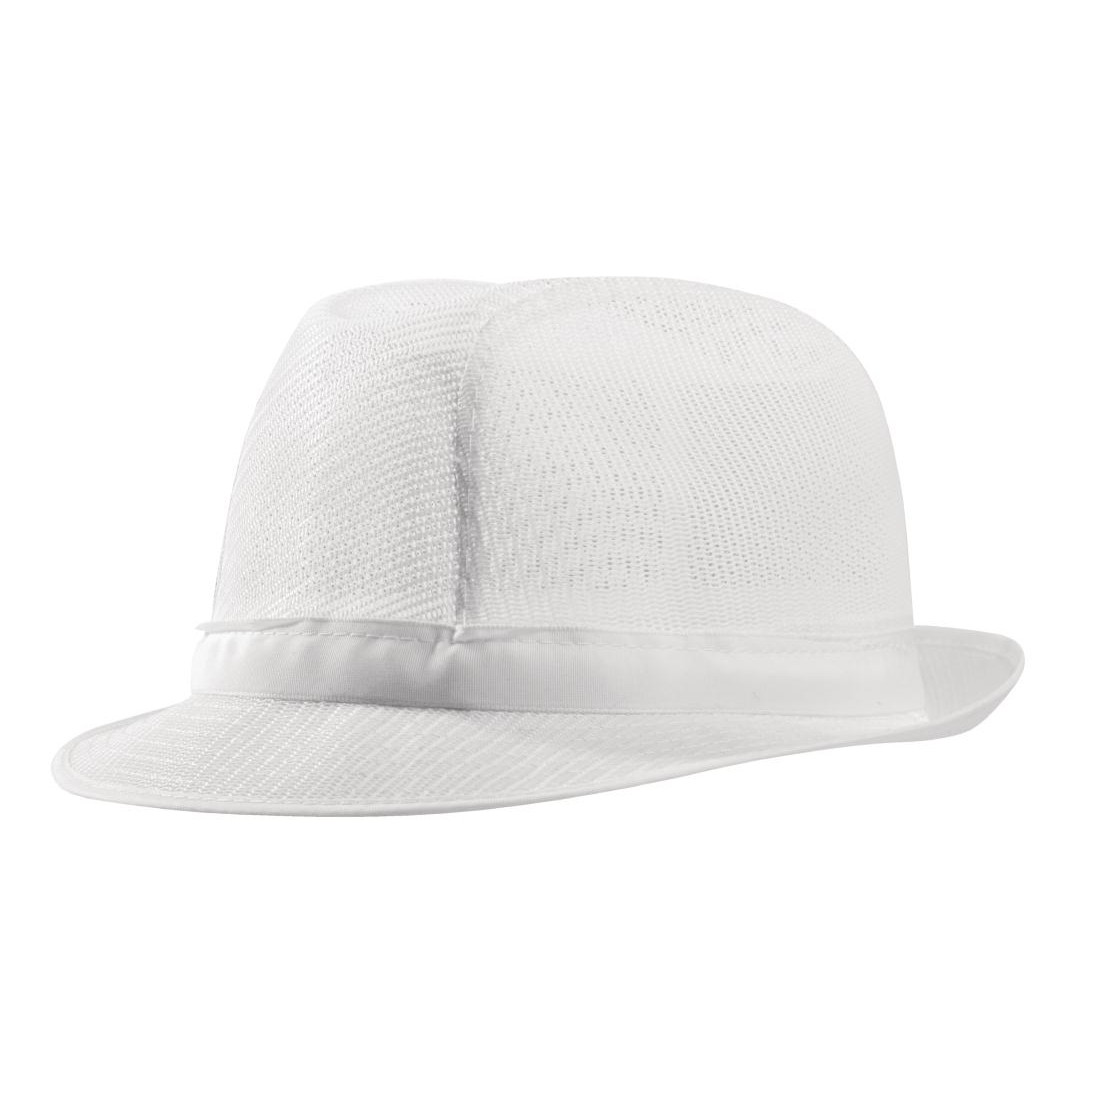 Trilby Hat White - Catering Uniform Net Trilby Hats - MBS Wholesale 0c027f52809